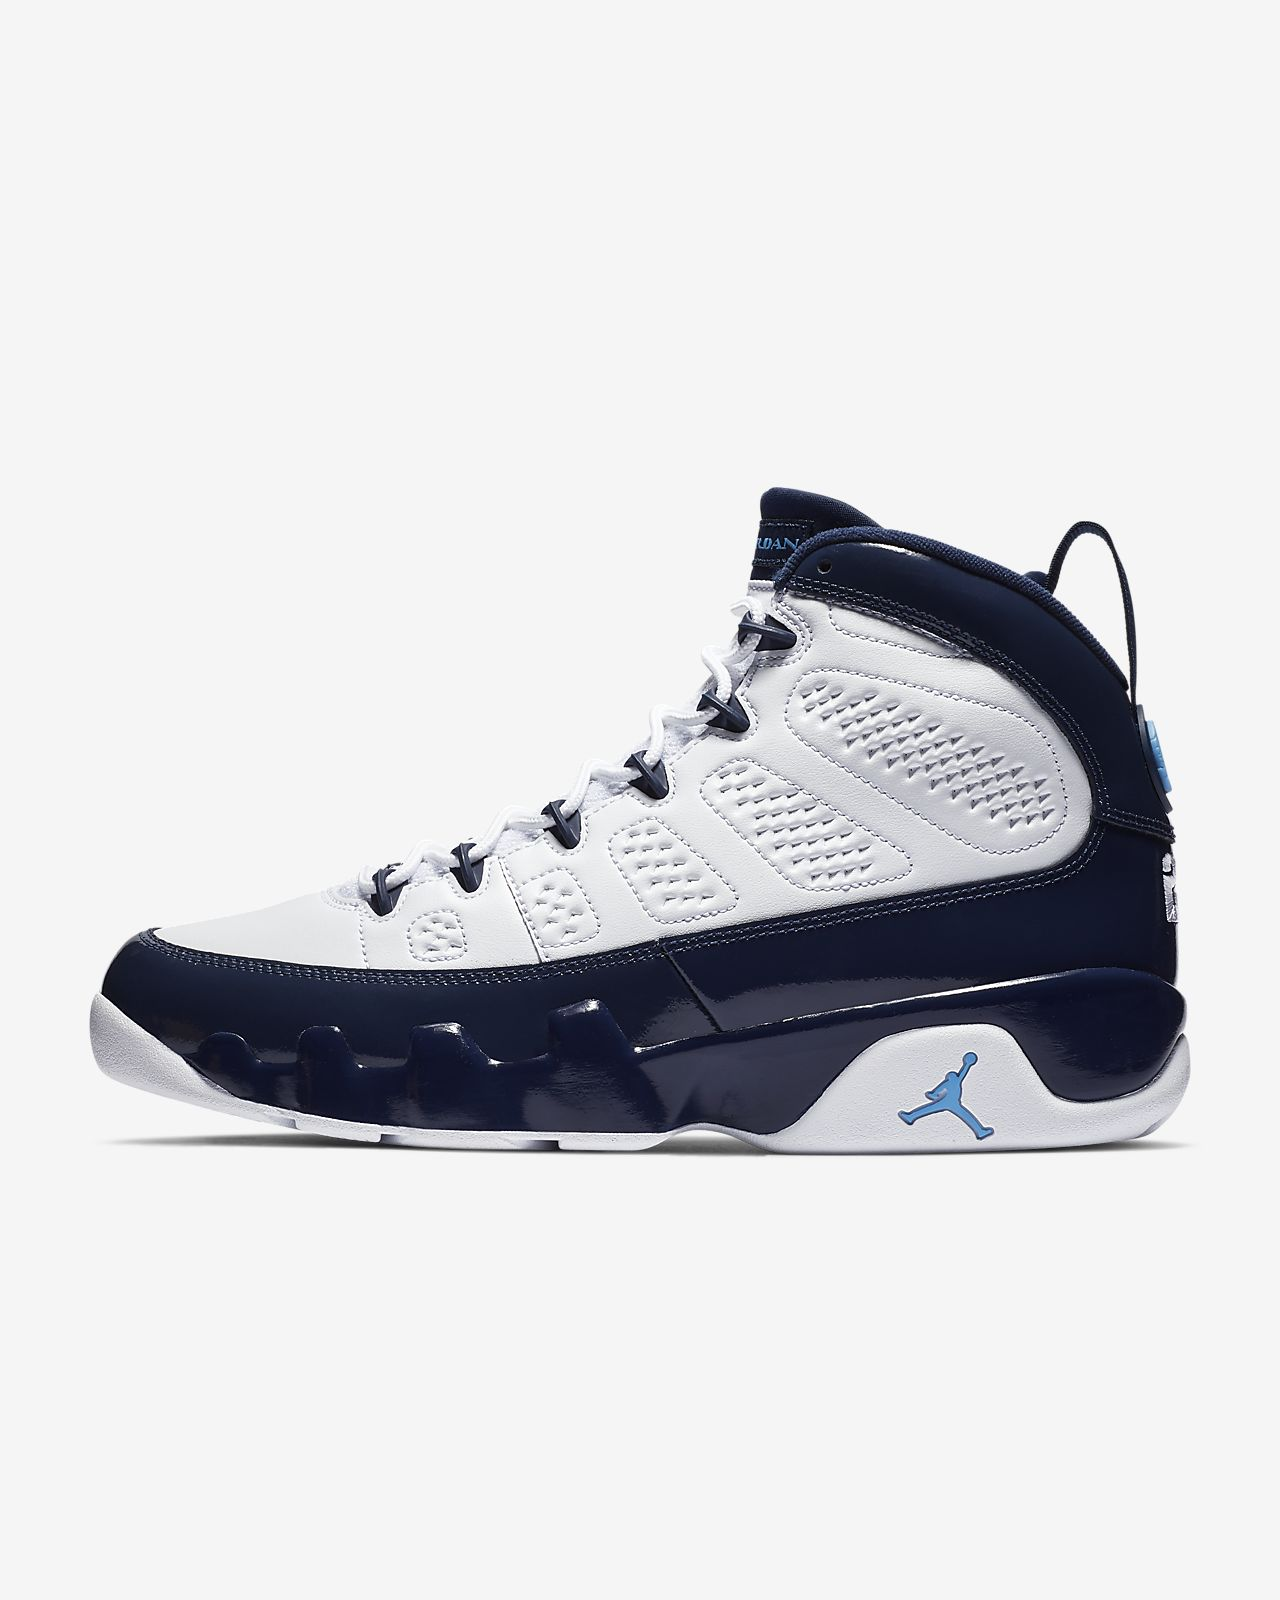 8fb5c4e478442d Air Jordan 9 Retro Men s Shoe. Nike.com